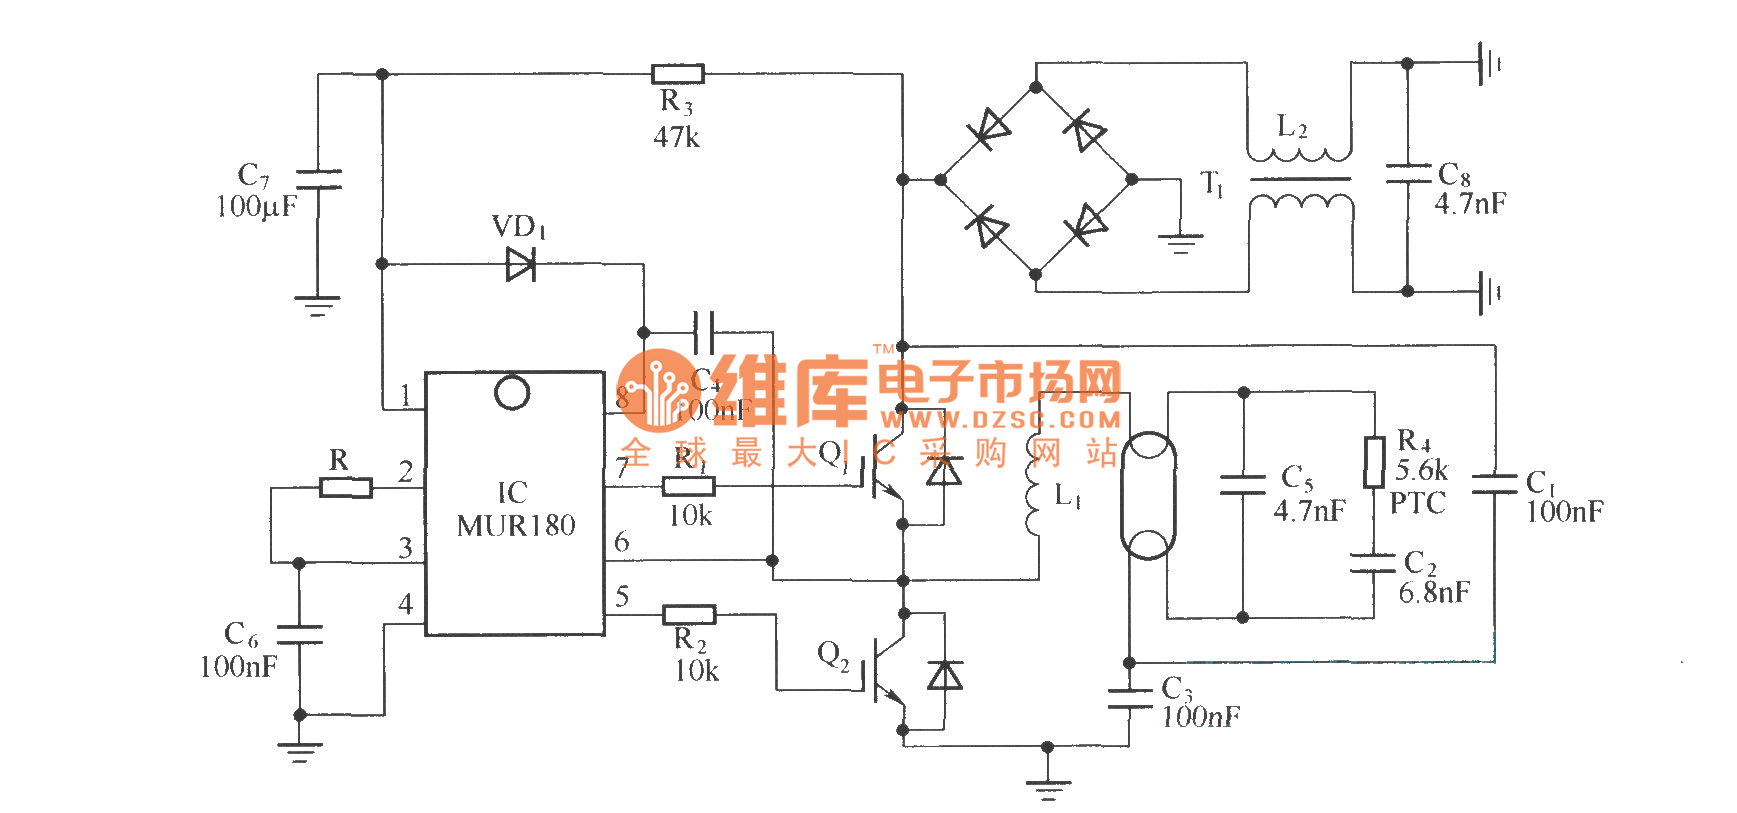 Http Wwwseekiccom Circuitdiagram Electricalequipmentcircuit Cfl Electronic Circuit Diagram Components Low Cost Ballast With Igbt Switch